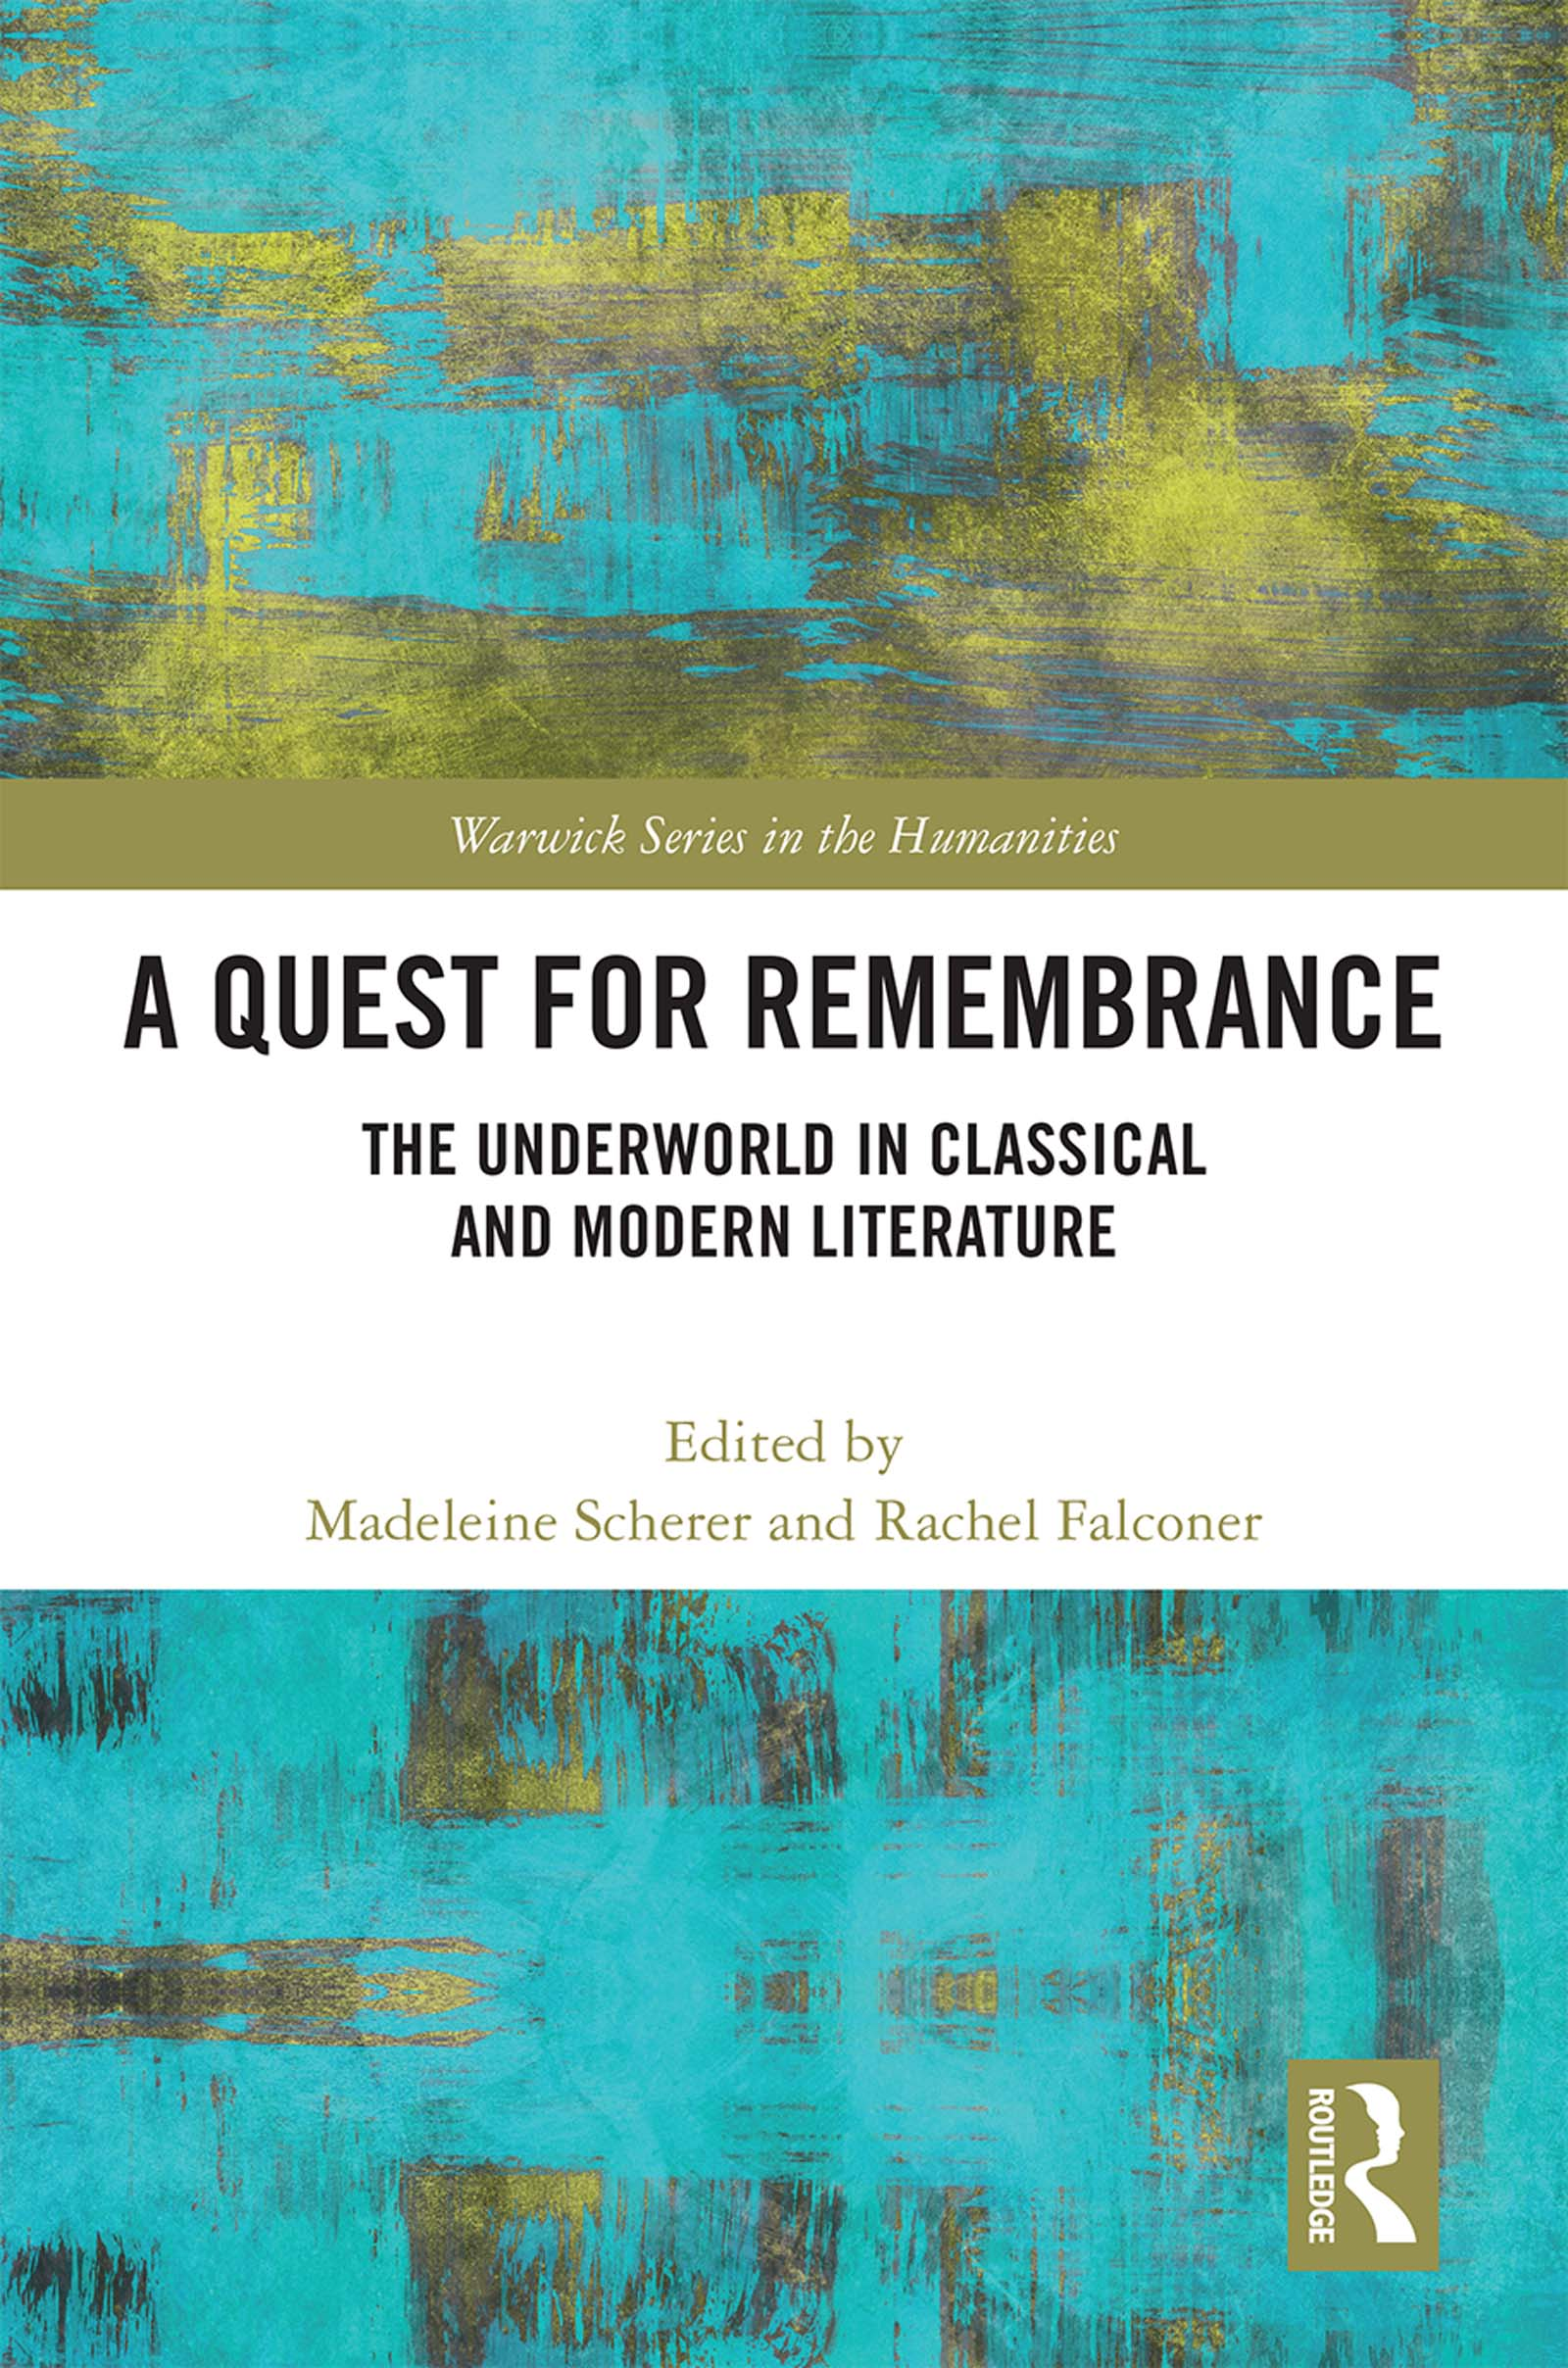 A Quest for Remembrance: The Underworld in Classical and Modern Literature book cover